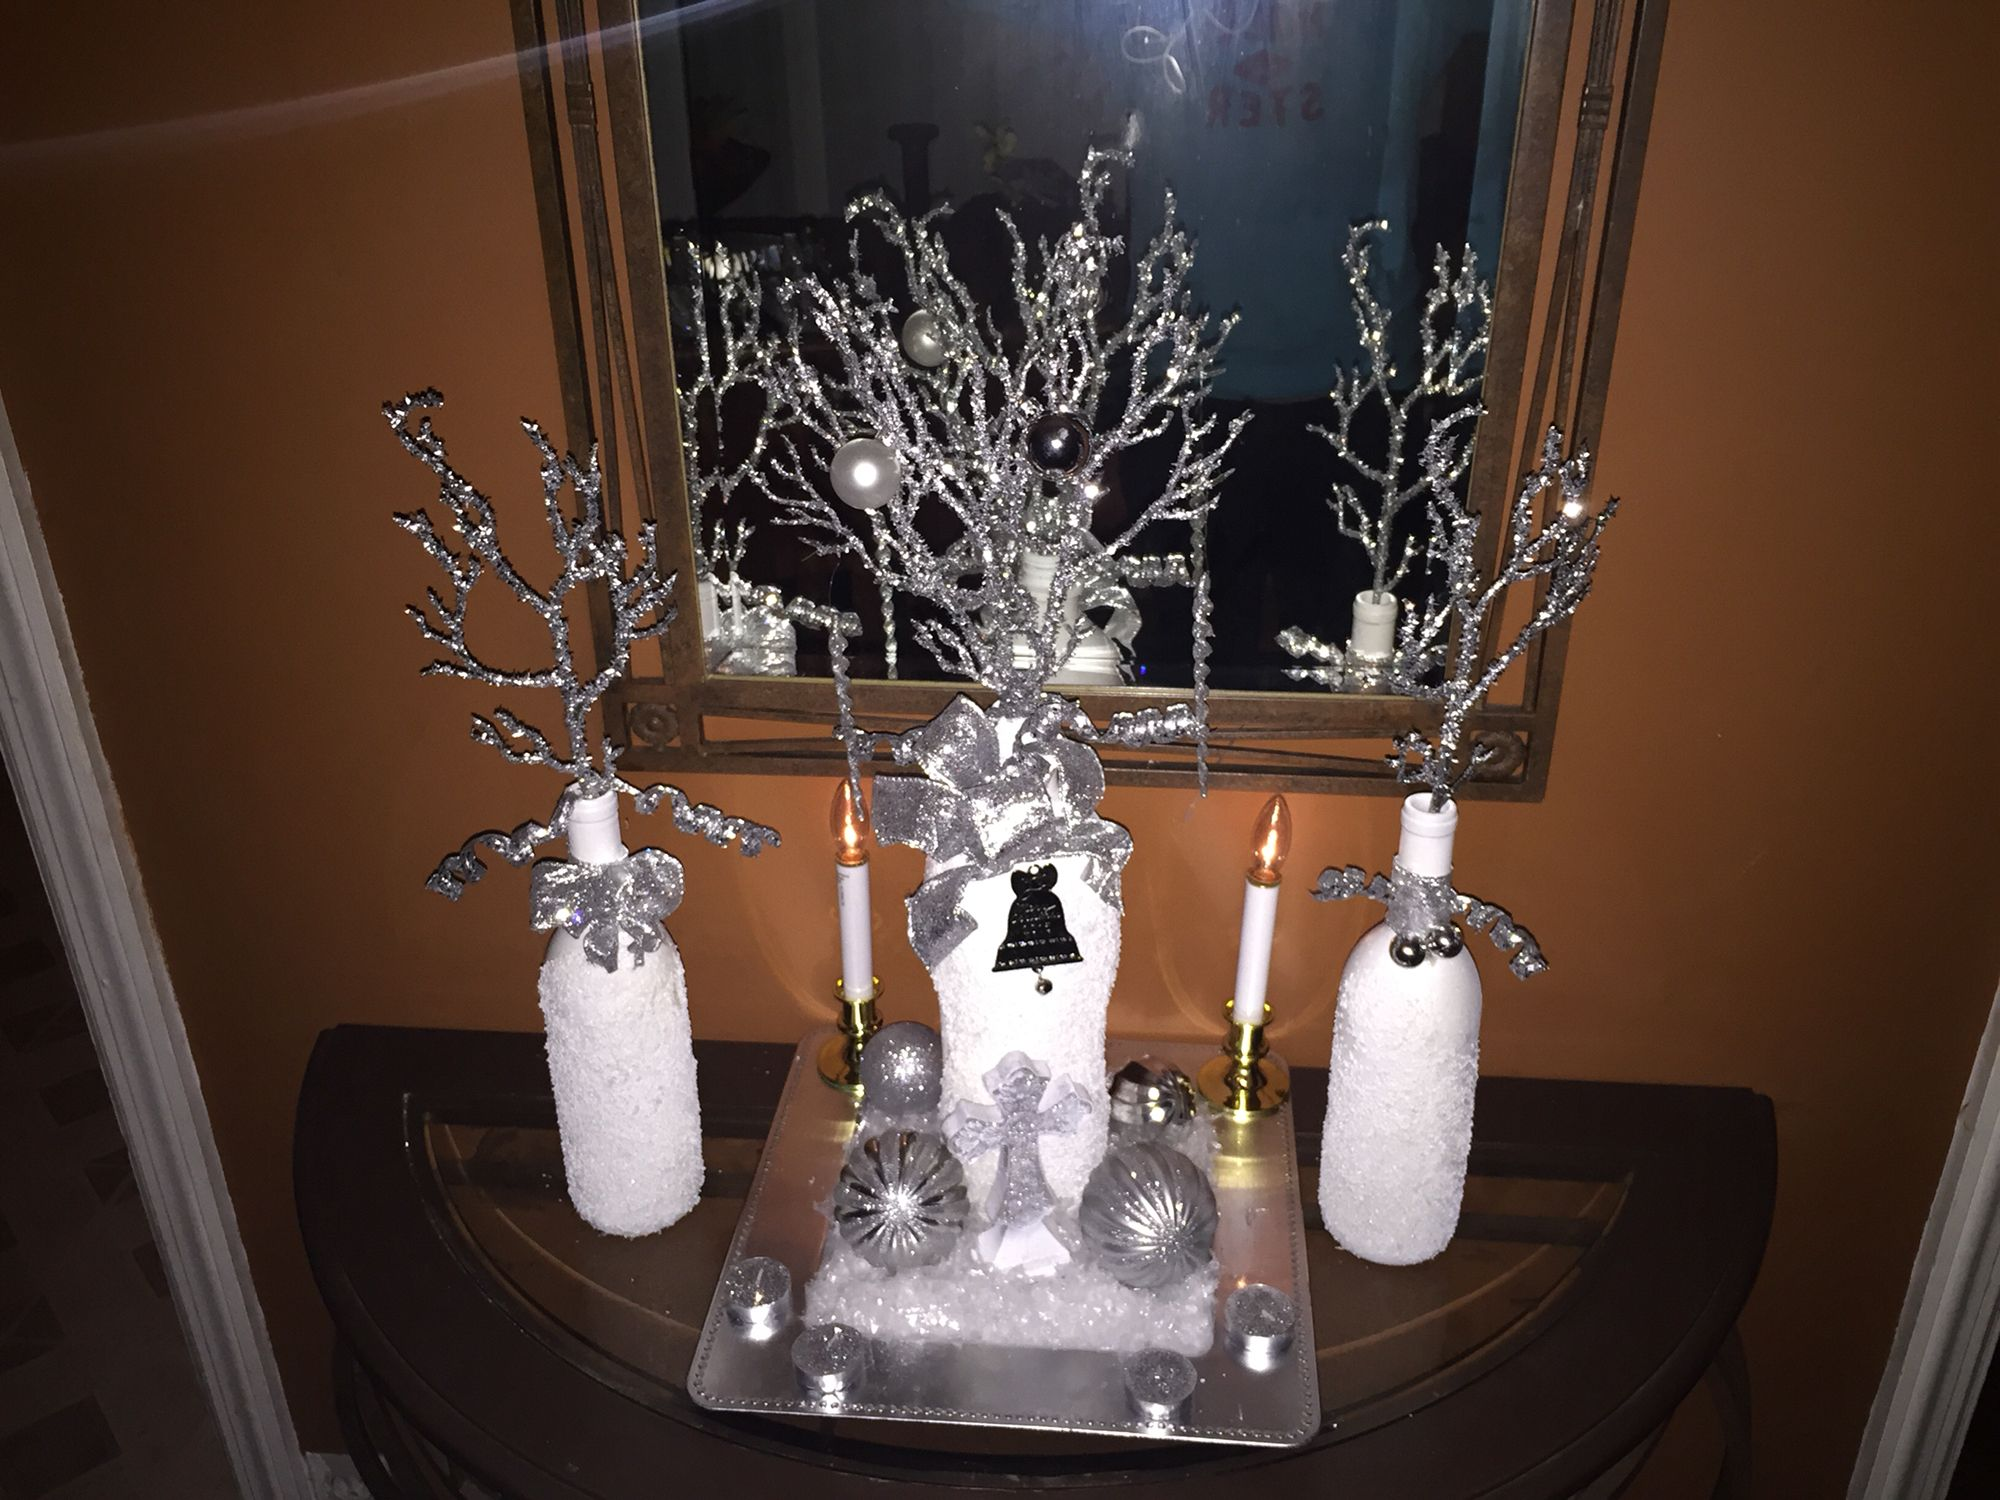 This is a winter wonderland it also is for sale 45$ for everything you see in the picture